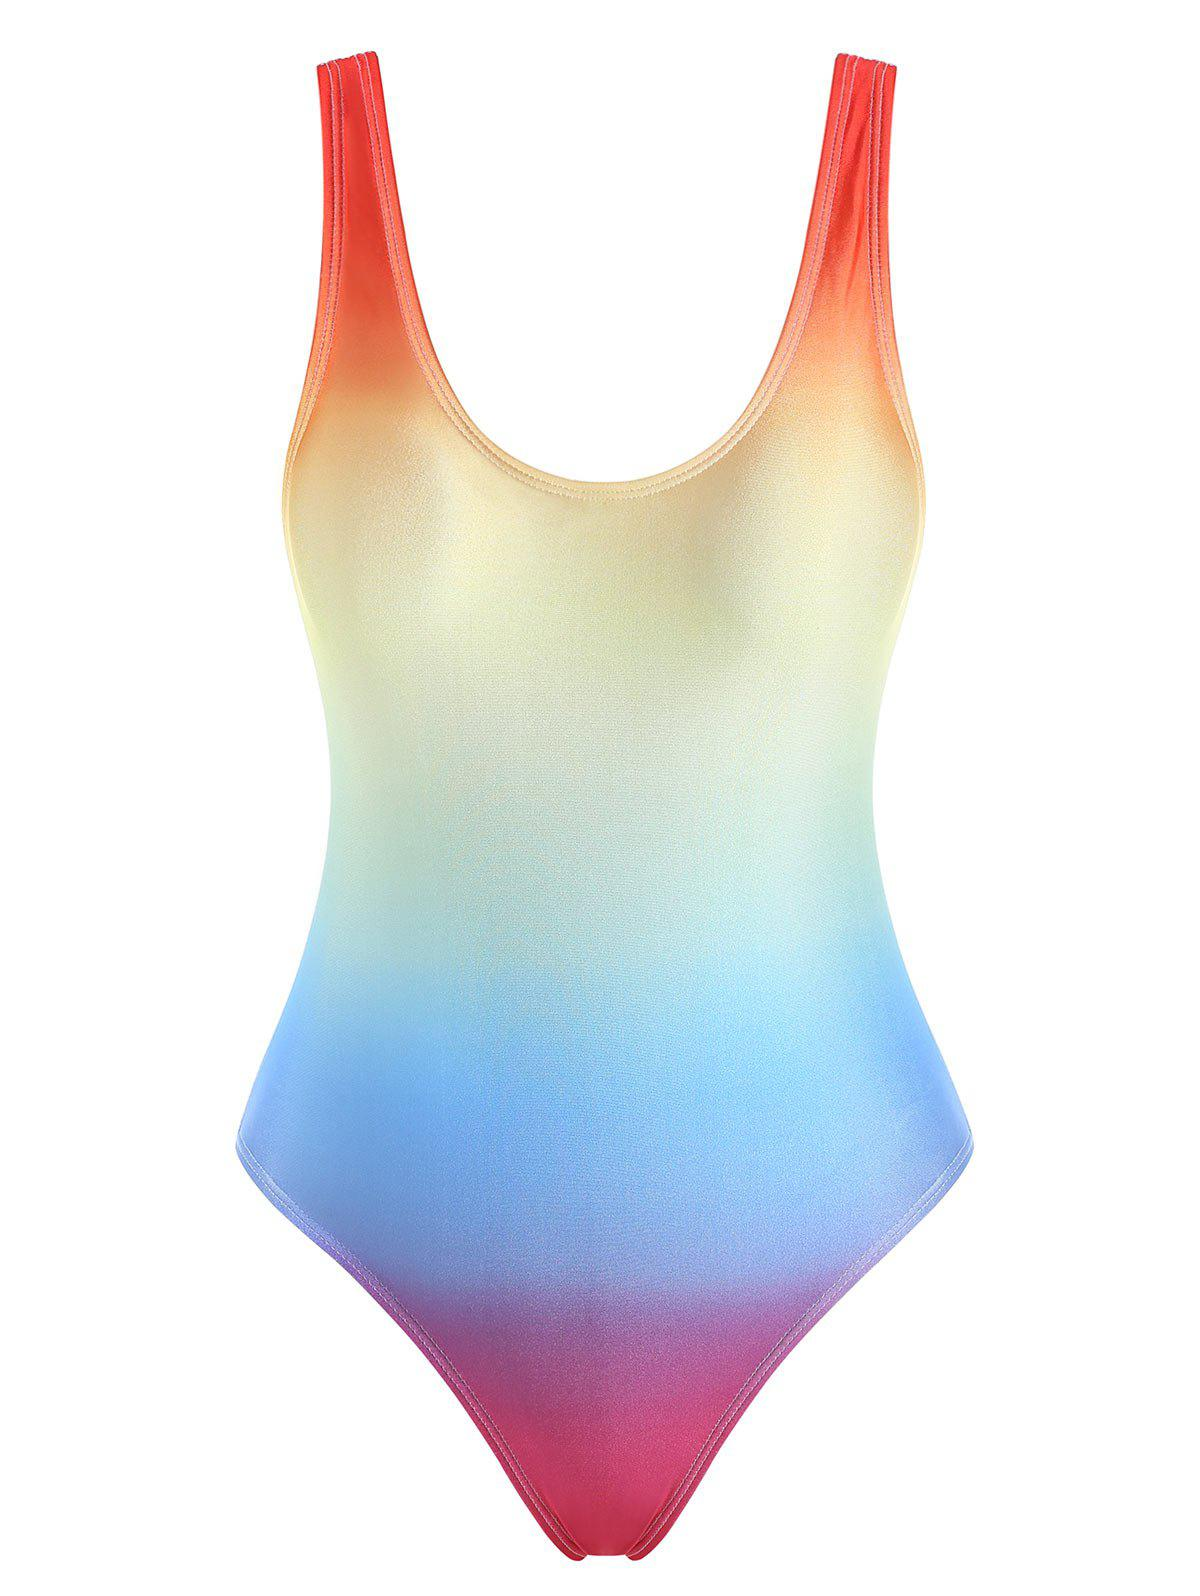 Rainbow Ombre Tank High Cut One-piece Swimsuit - multicolor A XL